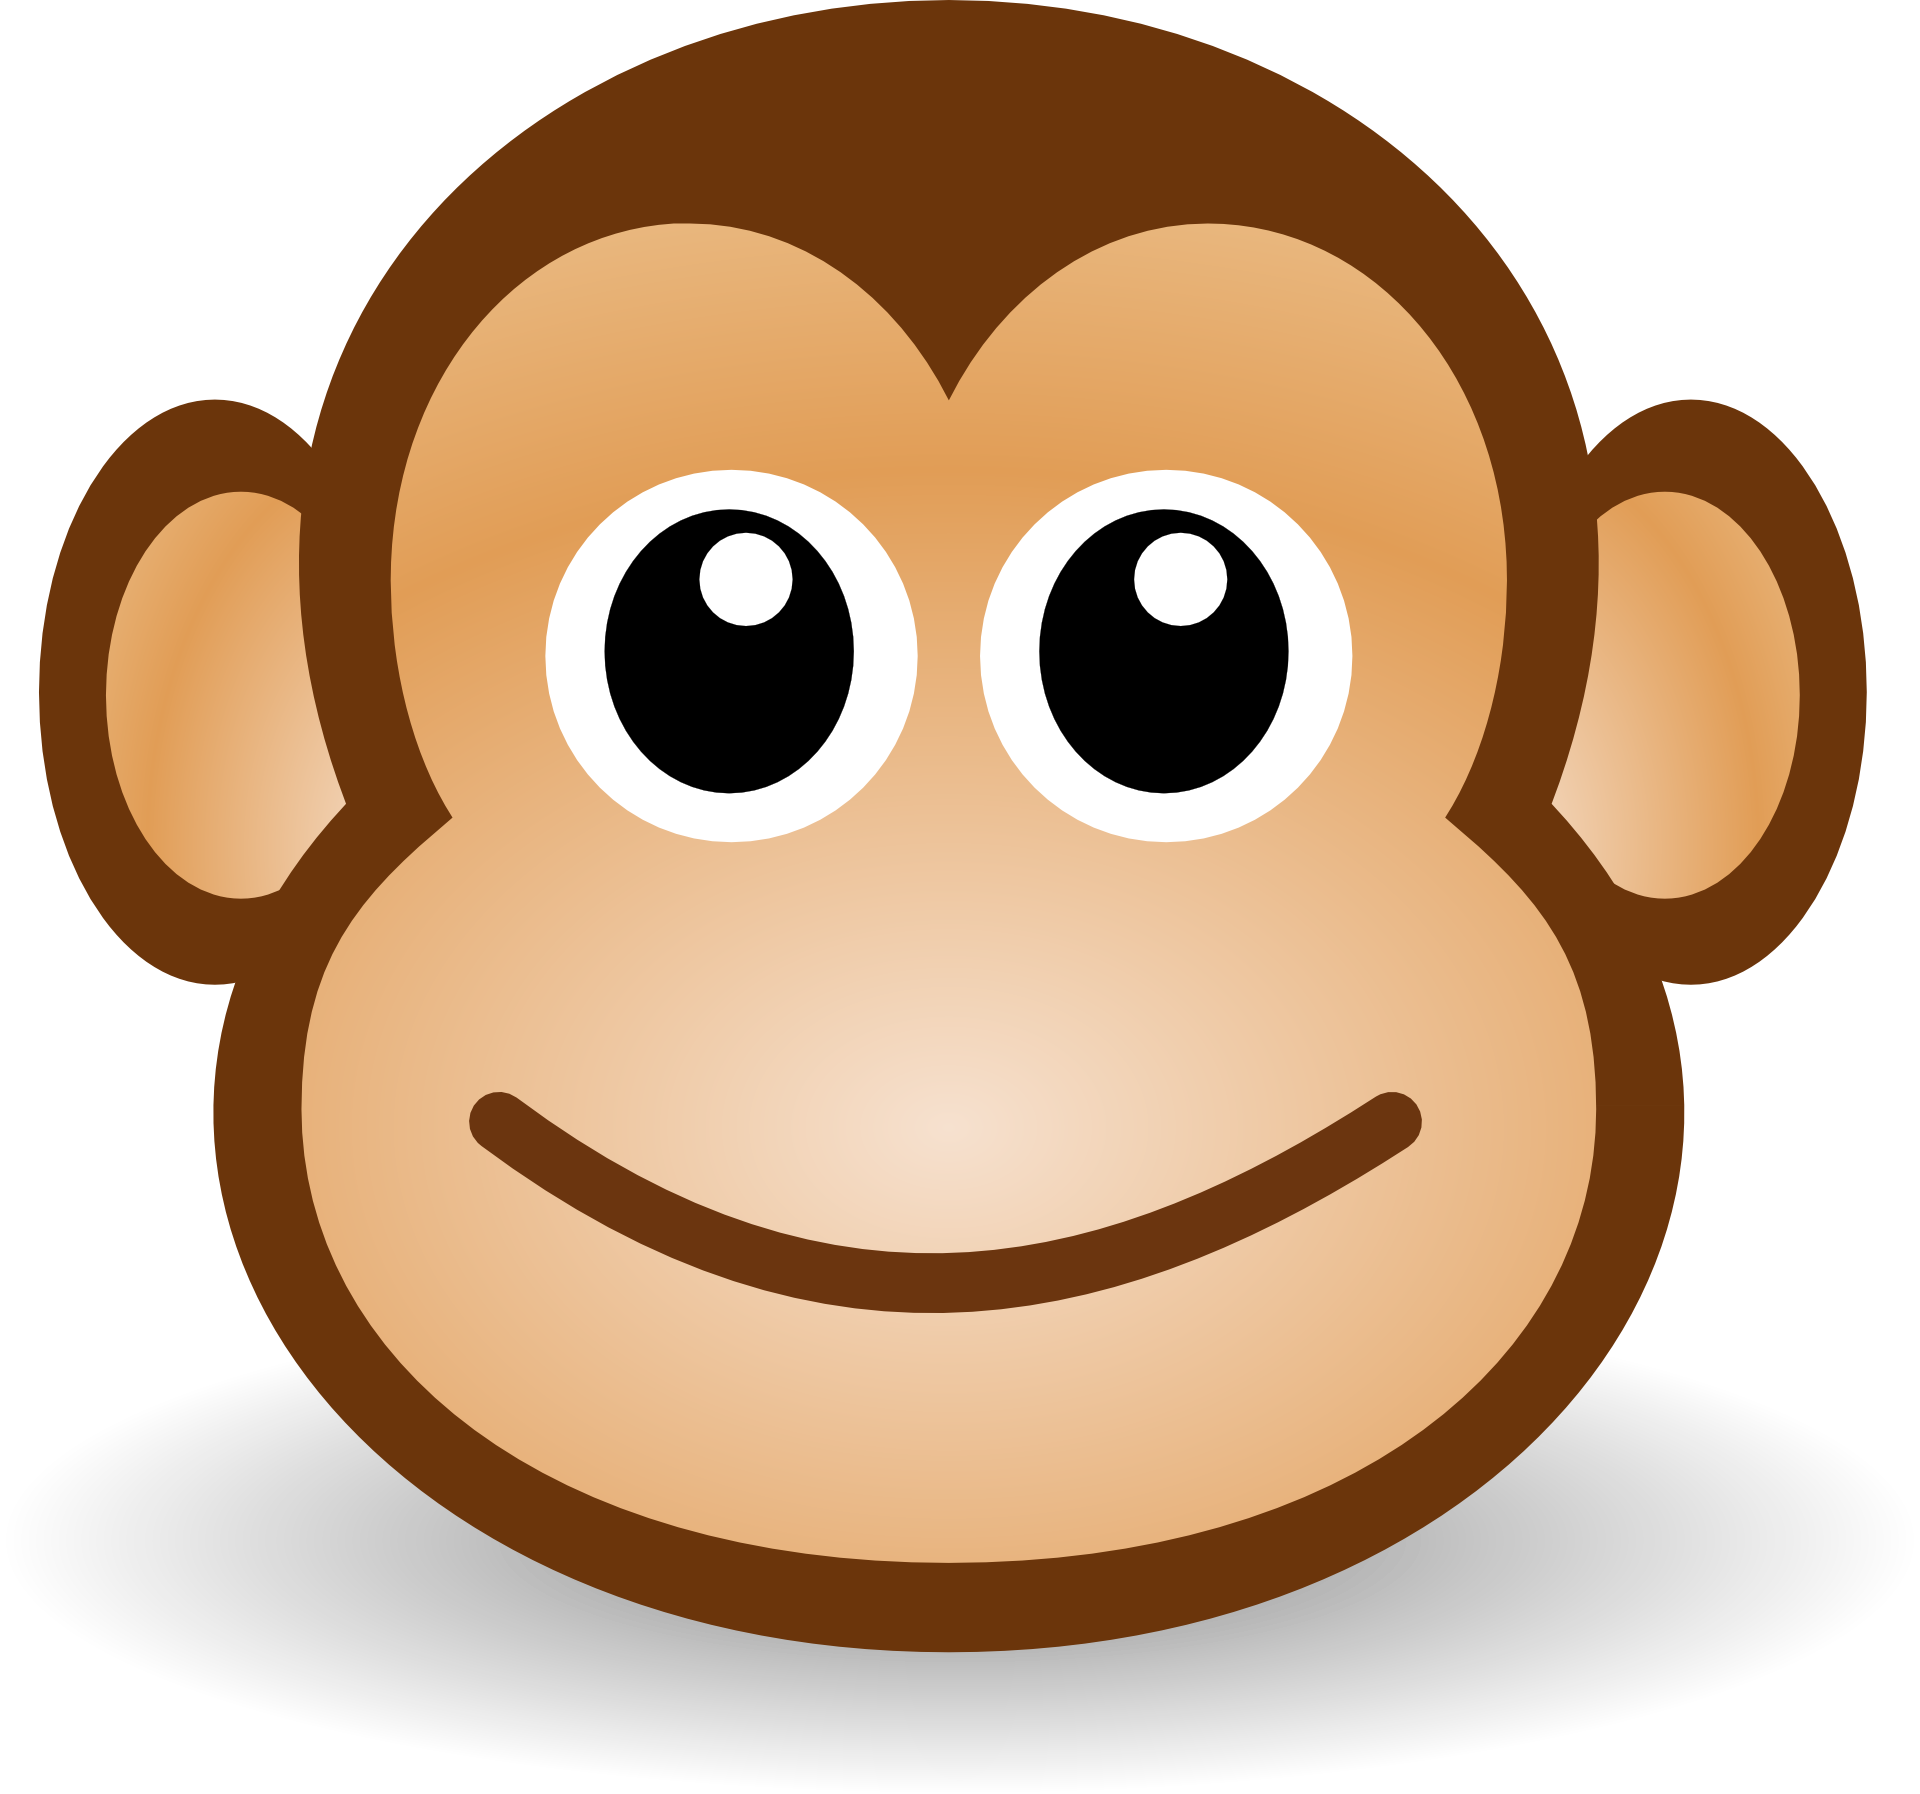 Smiling face of the monkey clipart free image.